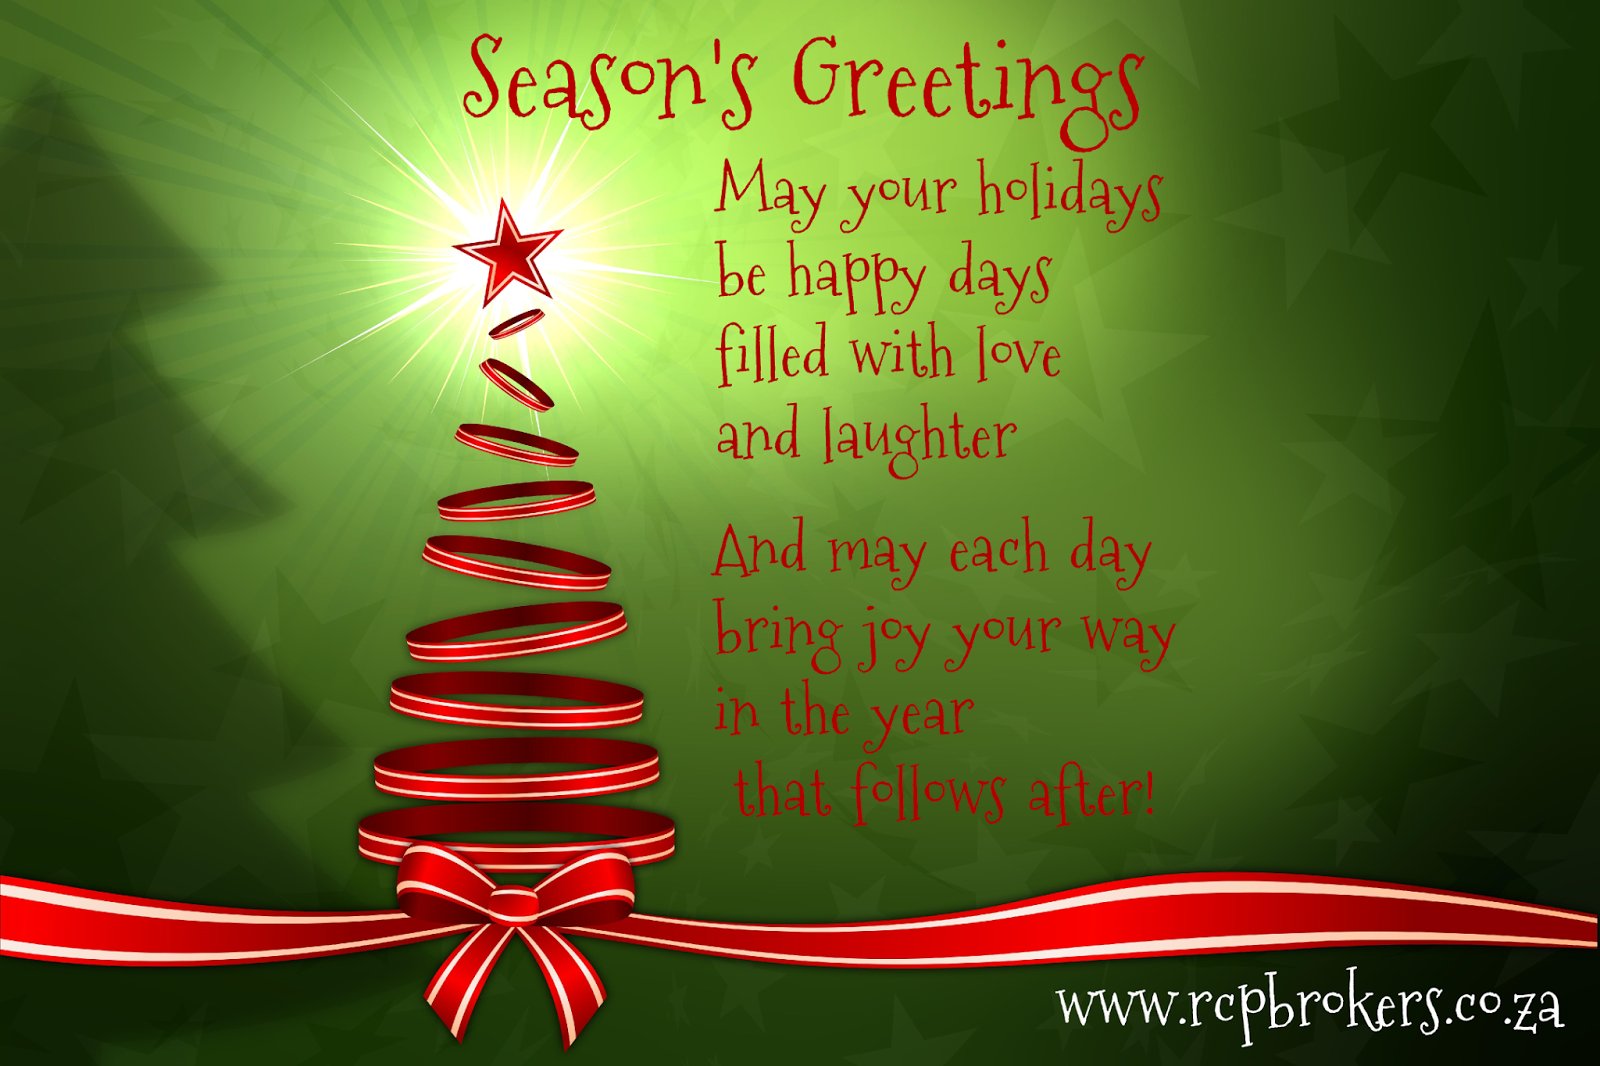 Rcp commercial property brokers blog seasons greetings from rcp rcp commercial property brokers management and staff would like to wish all our loyal customers and followers a joyous holiday season and a smashing new m4hsunfo